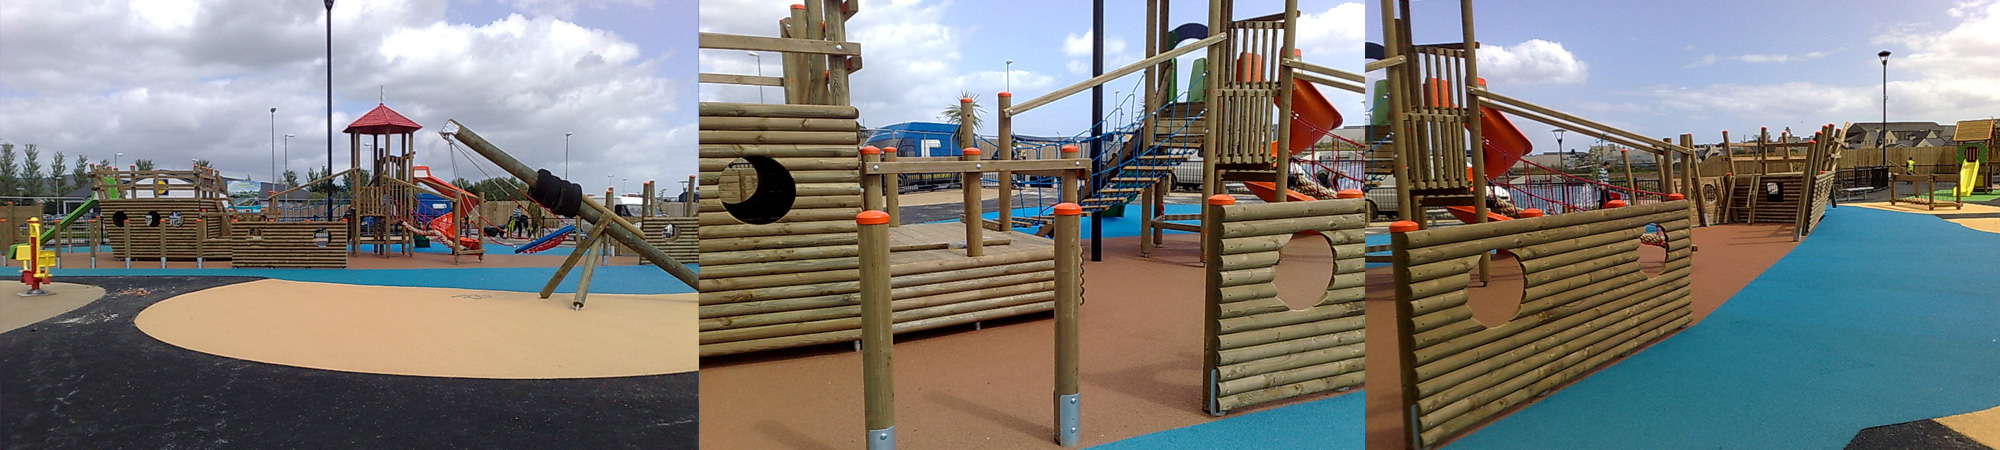 Best Playground Equipment Suppliers Browne Brothers